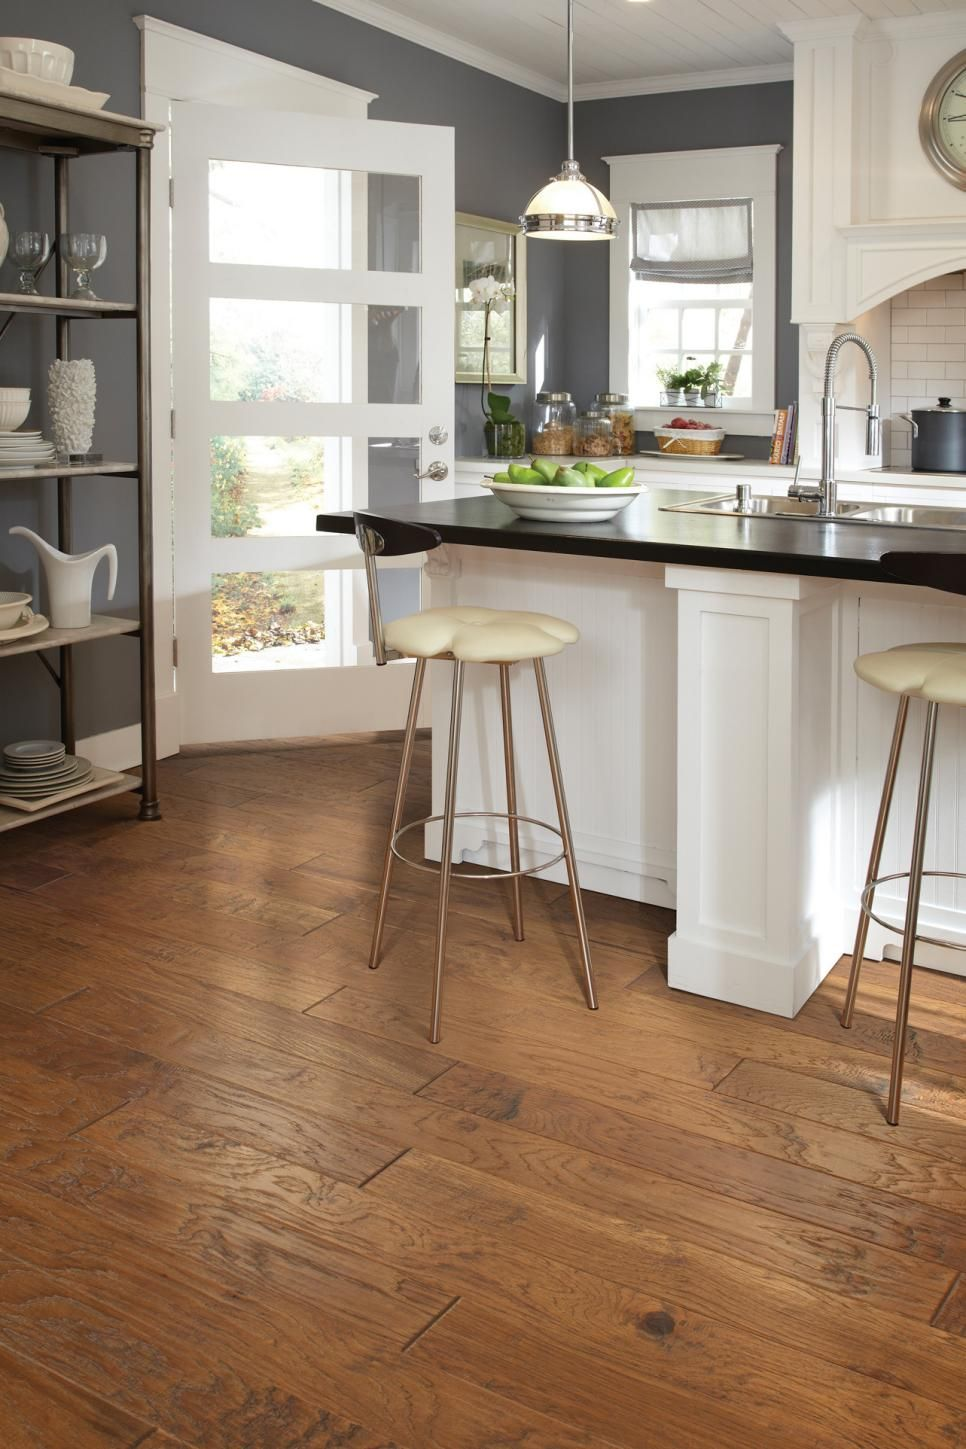 Sequoia Hickory Creates A Rustic Time Worn Visual Thatu0027s Highly Sought For  Todayu0027s ...